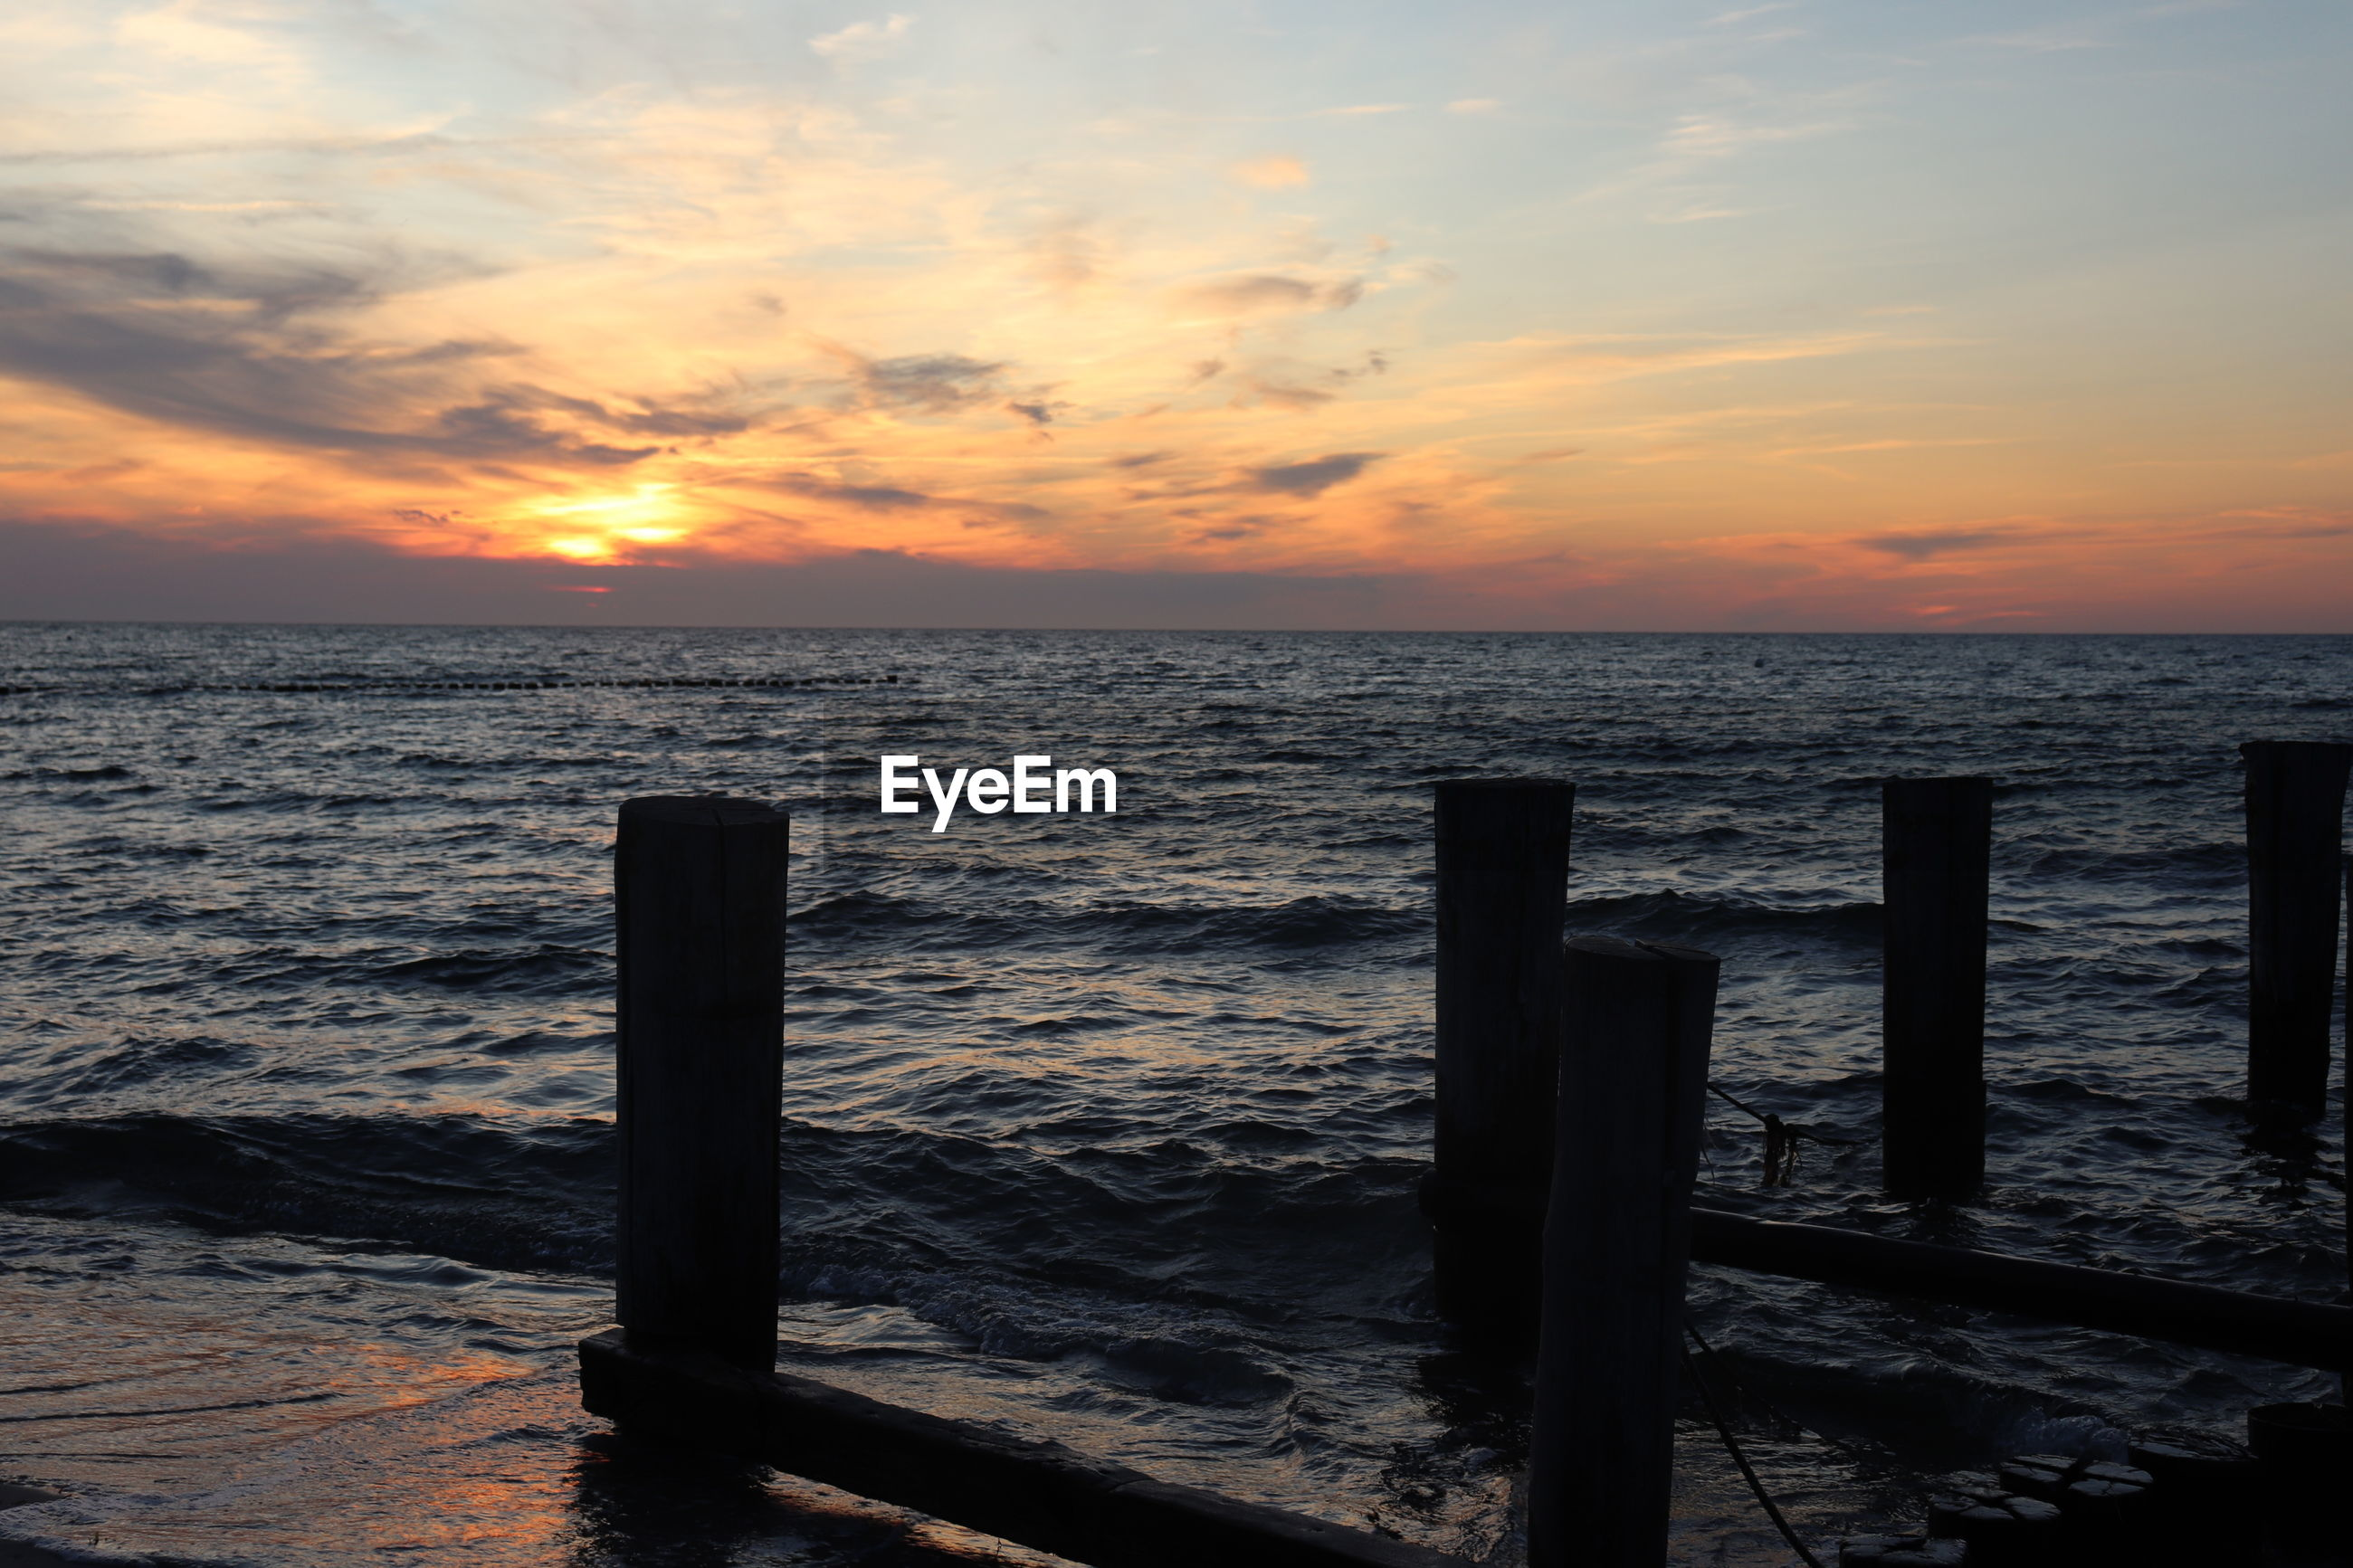 WOODEN POSTS ON SEA AGAINST SKY DURING SUNSET